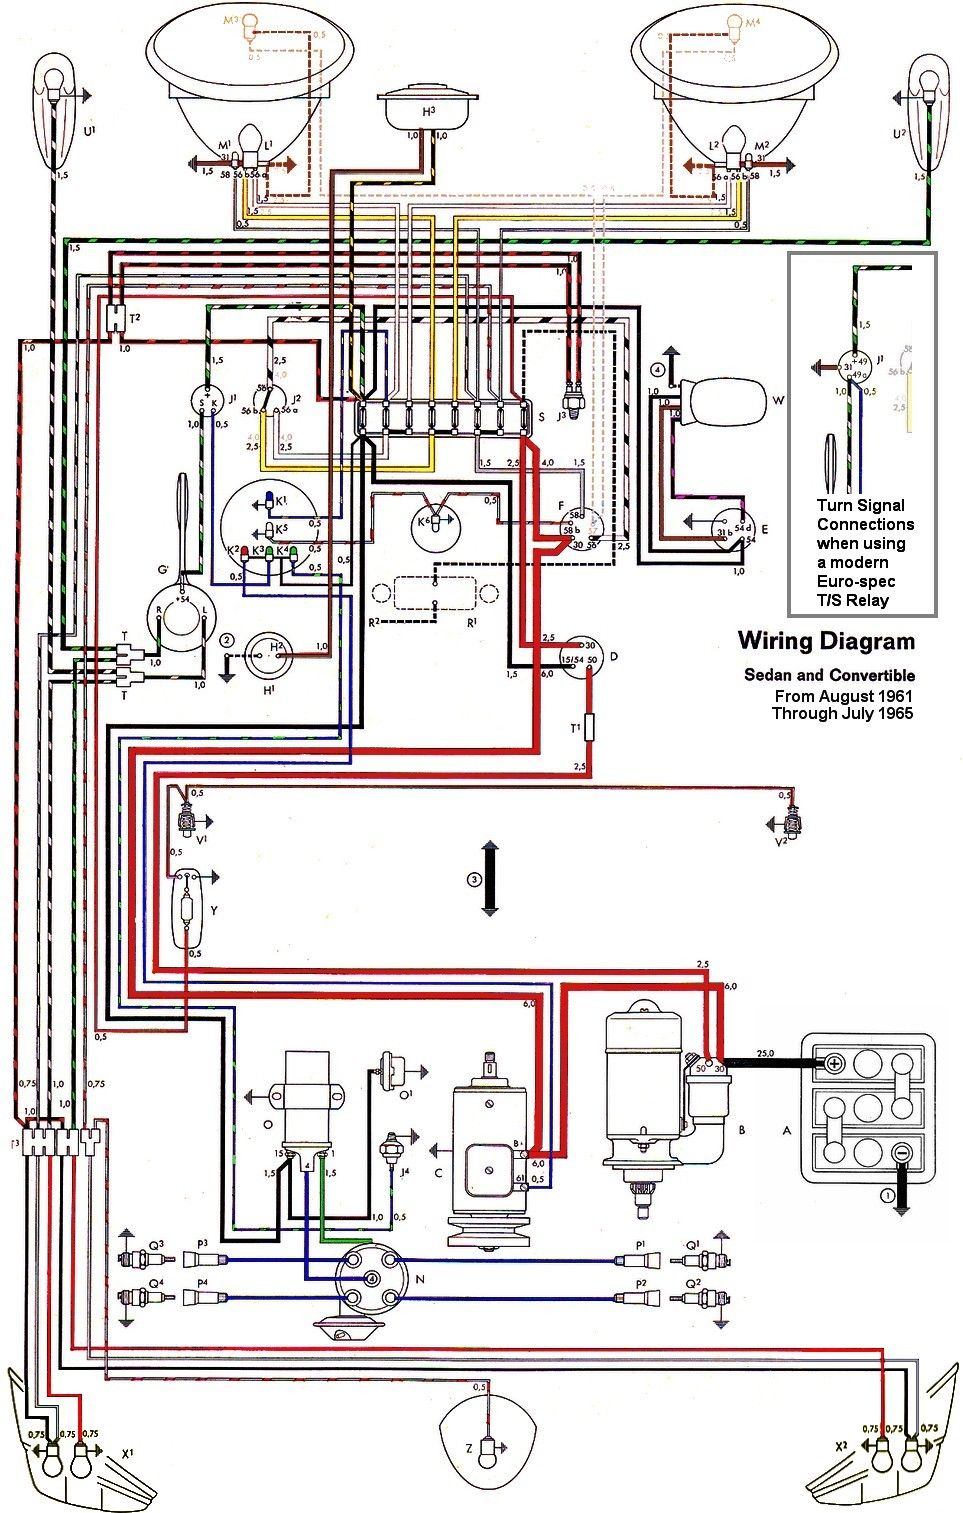 hight resolution of wiring diagram vw beetle sedan and convertible 1961 1965 vw vw vw beetle harness vw beetle wiring